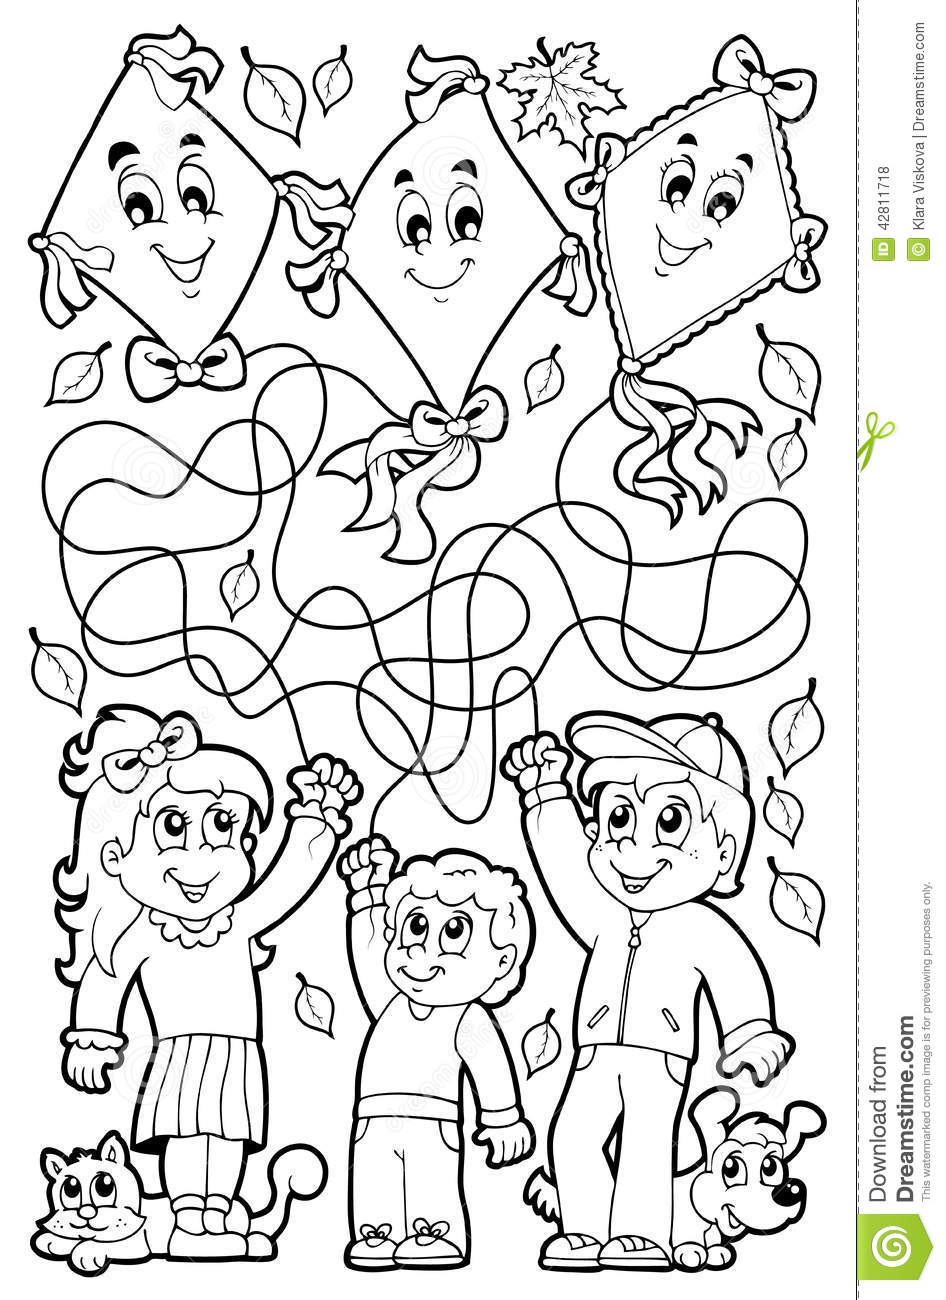 maze 9 coloring book with children stock vector